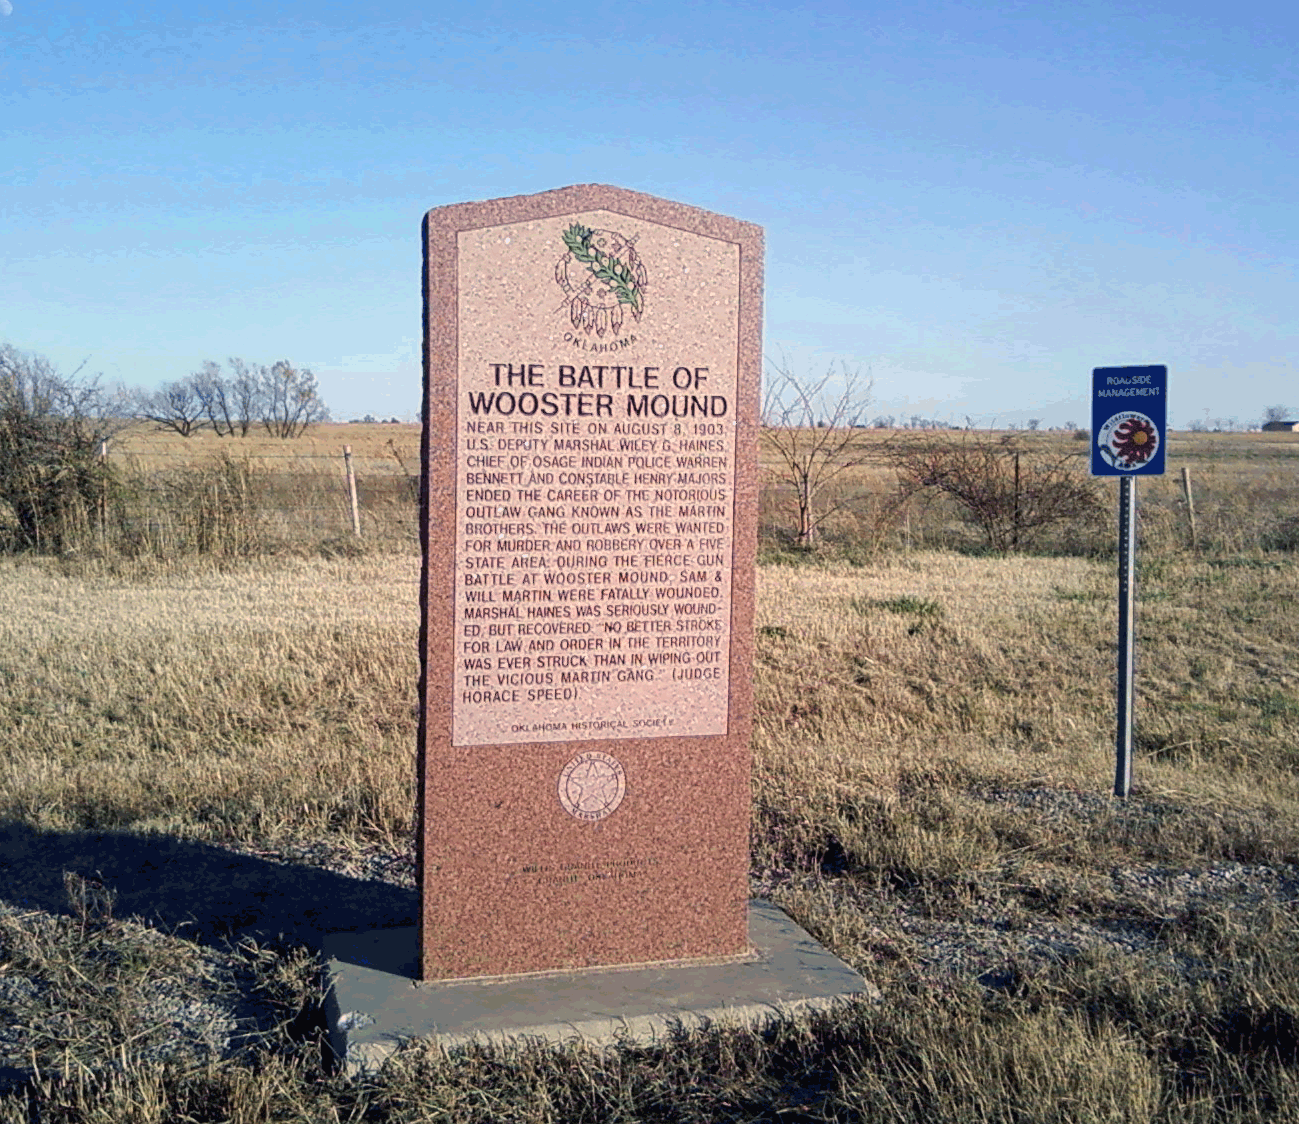 Exploring Oklahoma History: The Battle of Wooster Mound